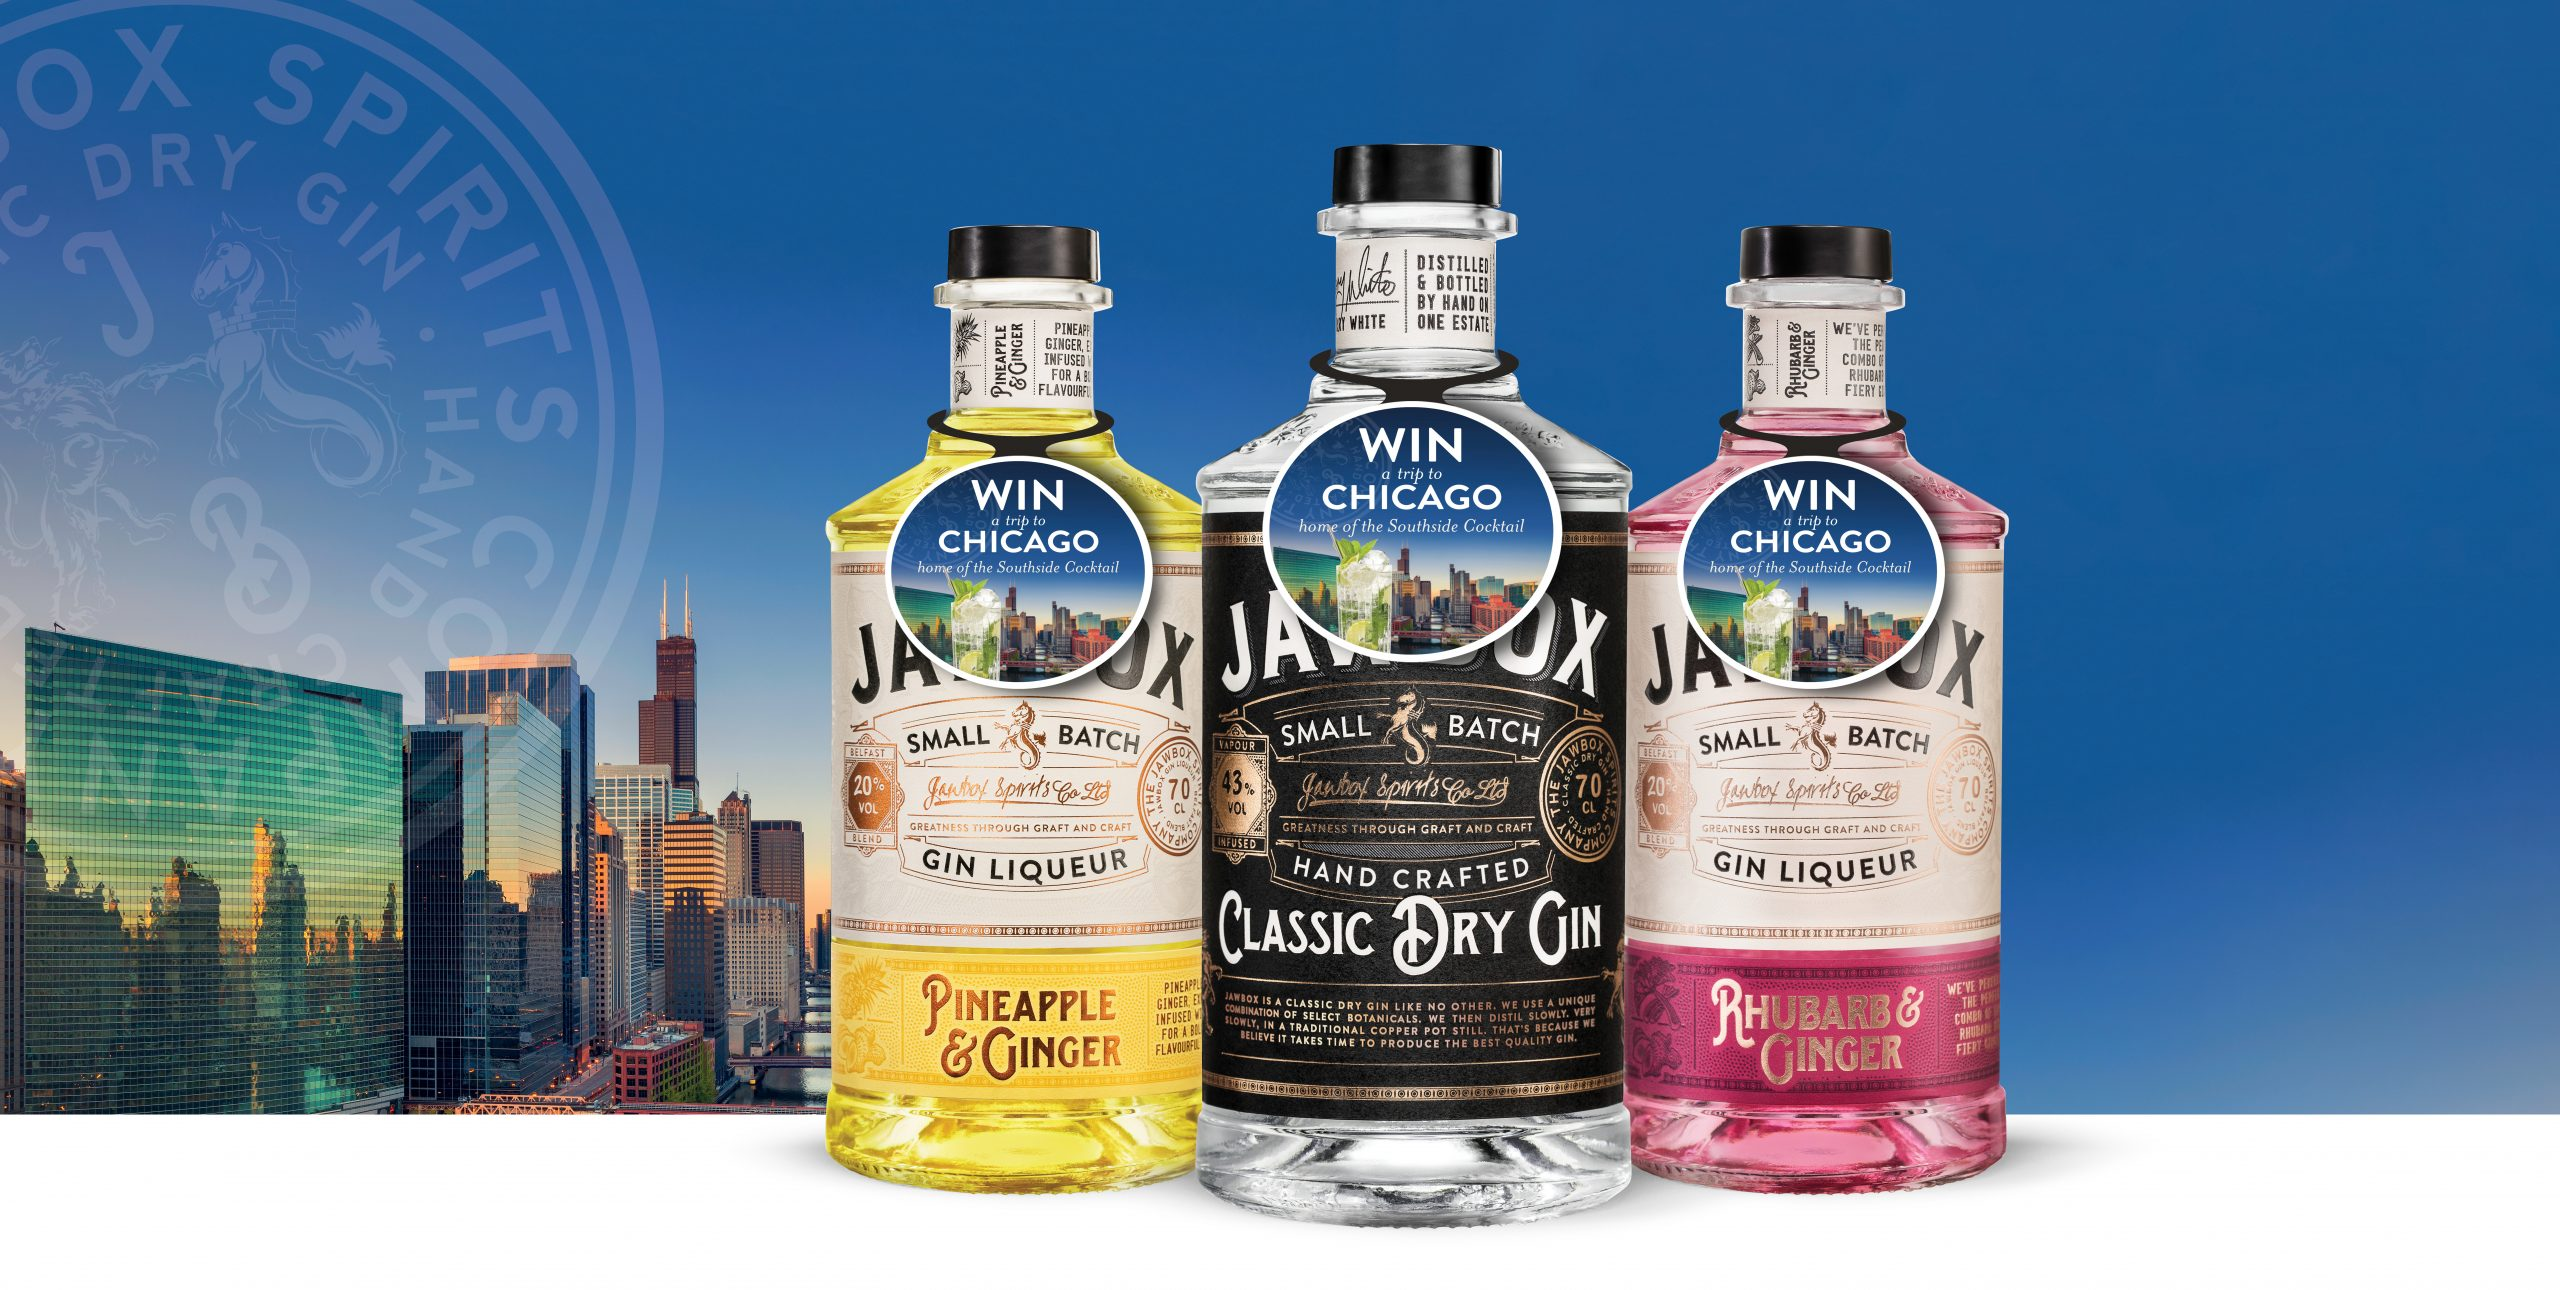 Jawbox Gin Launches Promotion To Win A Trip To Chicago In Homage To The Southside Cocktail photo